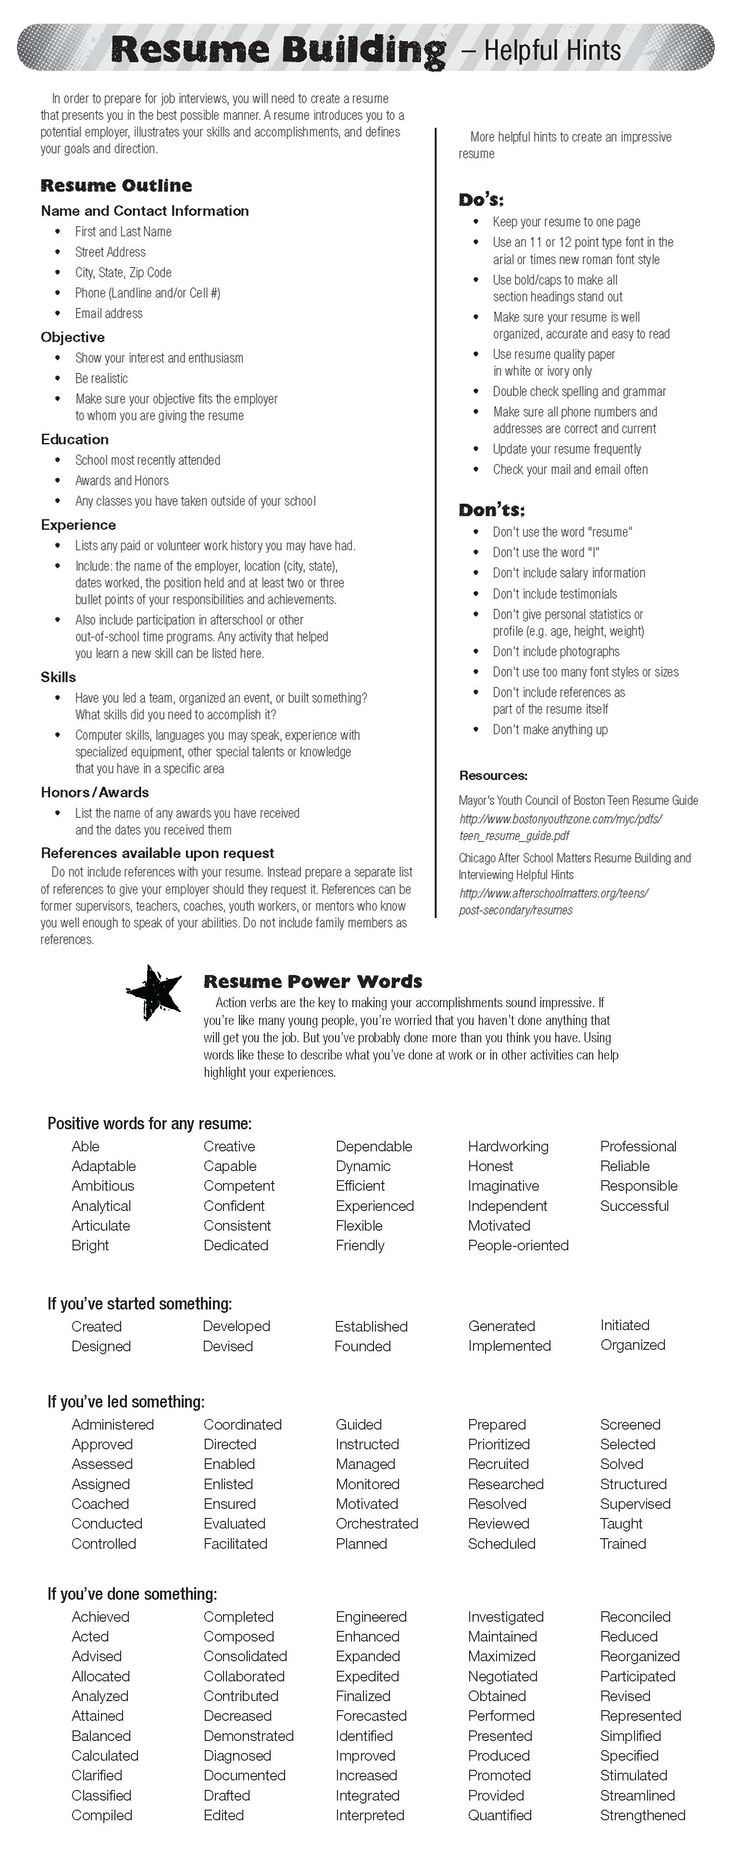 Opposenewapstandardsus  Personable  Ideas About Resume On Pinterest  Cv Format Resume Cv And  With Goodlooking  Ideas About Resume On Pinterest  Cv Format Resume Cv And Resume Templates With Extraordinary Teacher Assistant Resume Also Line Cook Resume In Addition Resume Templet And Resume Samples Free As Well As College Student Resume Template Additionally Cosmetologist Resume From Pinterestcom With Opposenewapstandardsus  Goodlooking  Ideas About Resume On Pinterest  Cv Format Resume Cv And  With Extraordinary  Ideas About Resume On Pinterest  Cv Format Resume Cv And Resume Templates And Personable Teacher Assistant Resume Also Line Cook Resume In Addition Resume Templet From Pinterestcom